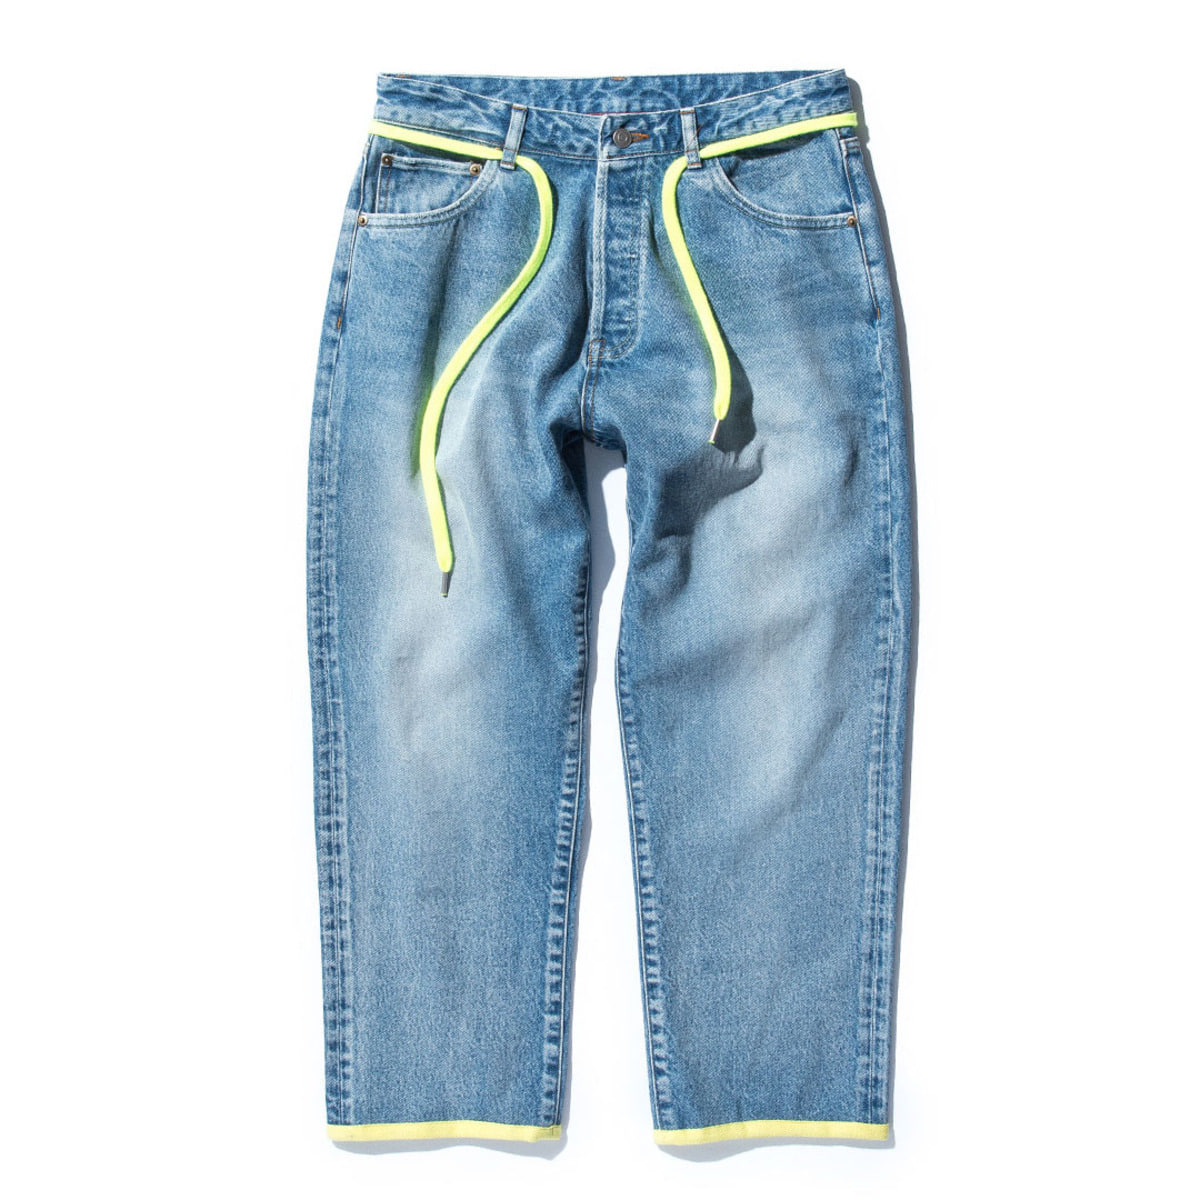 Cropped Pt (12.5oz Washed Denim) (B4) Blue & F.Green